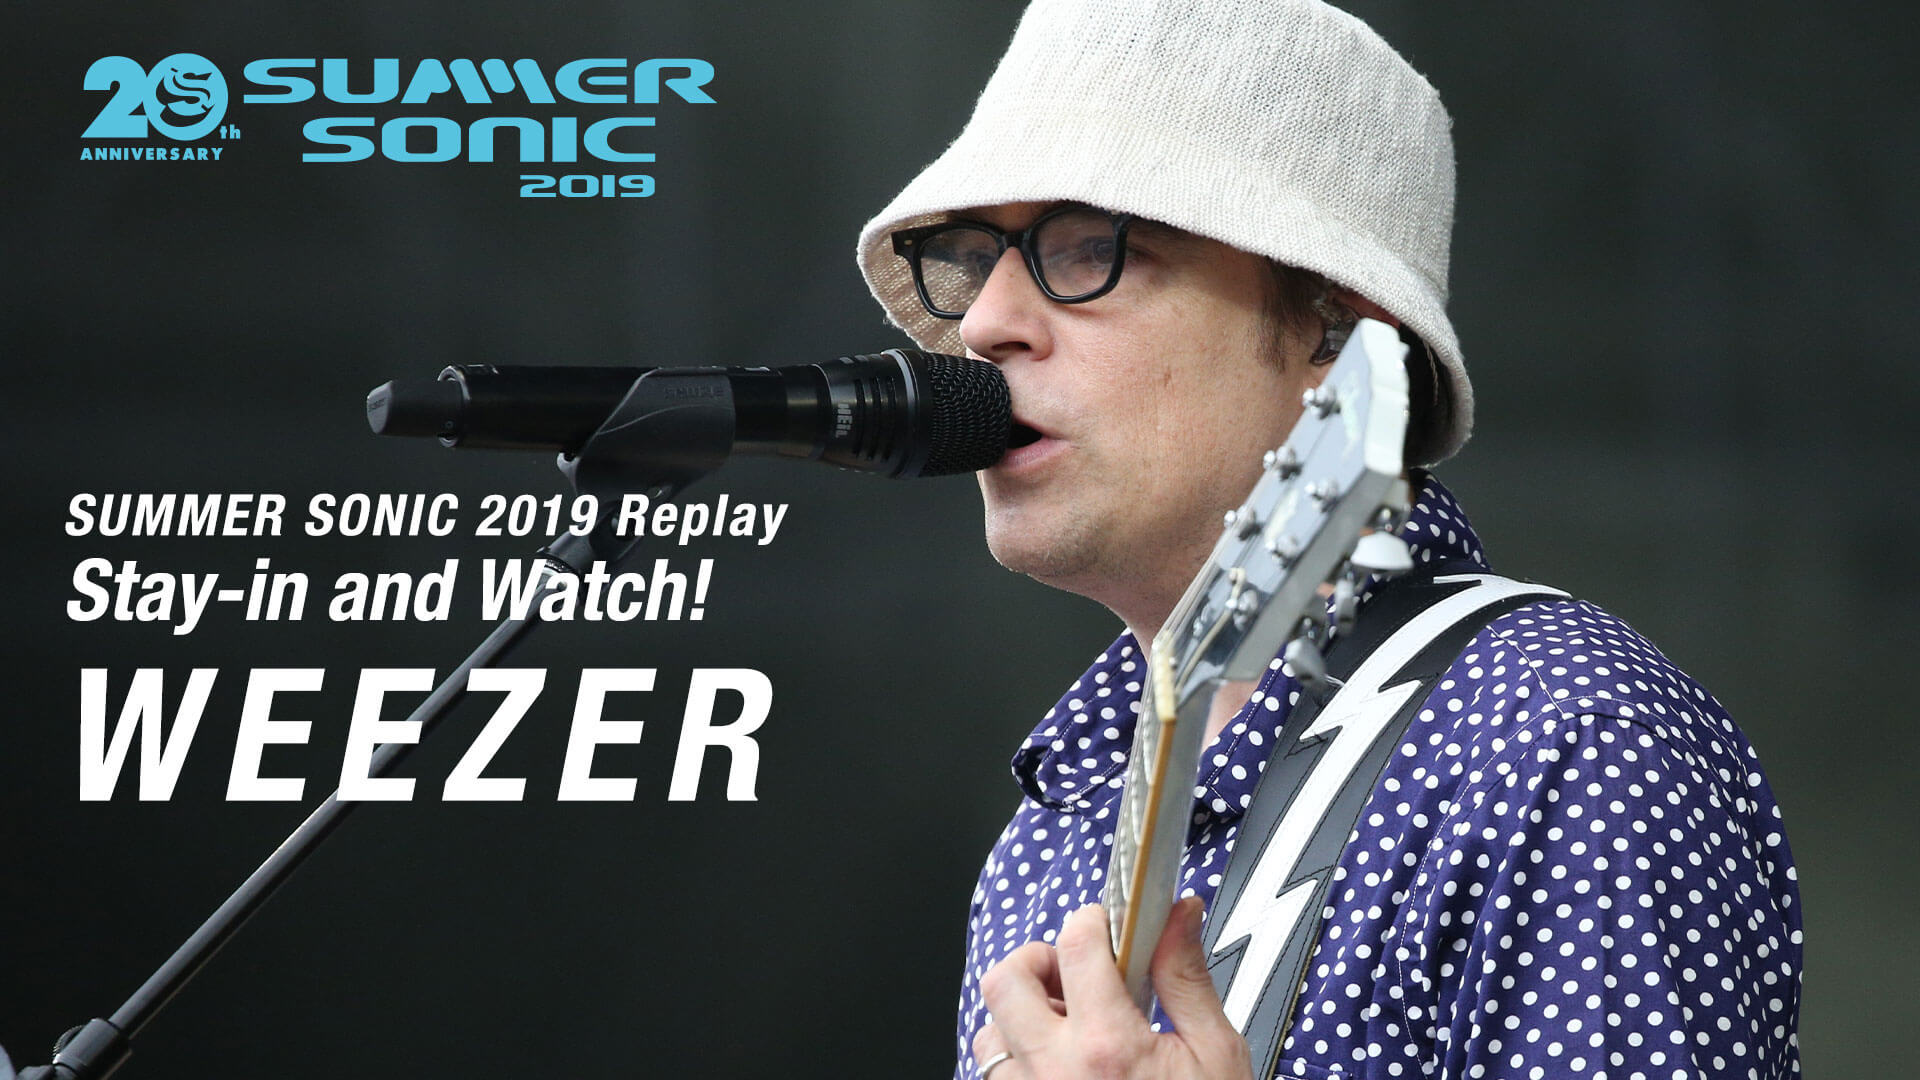 <SUMMER SONIC 2019>のパフォーマンス映像が24時間限定配信決定!Fall Out Boy、Weezer、The Birthday、Two Door Cinema Clubの4組 music200327_summersonic_3